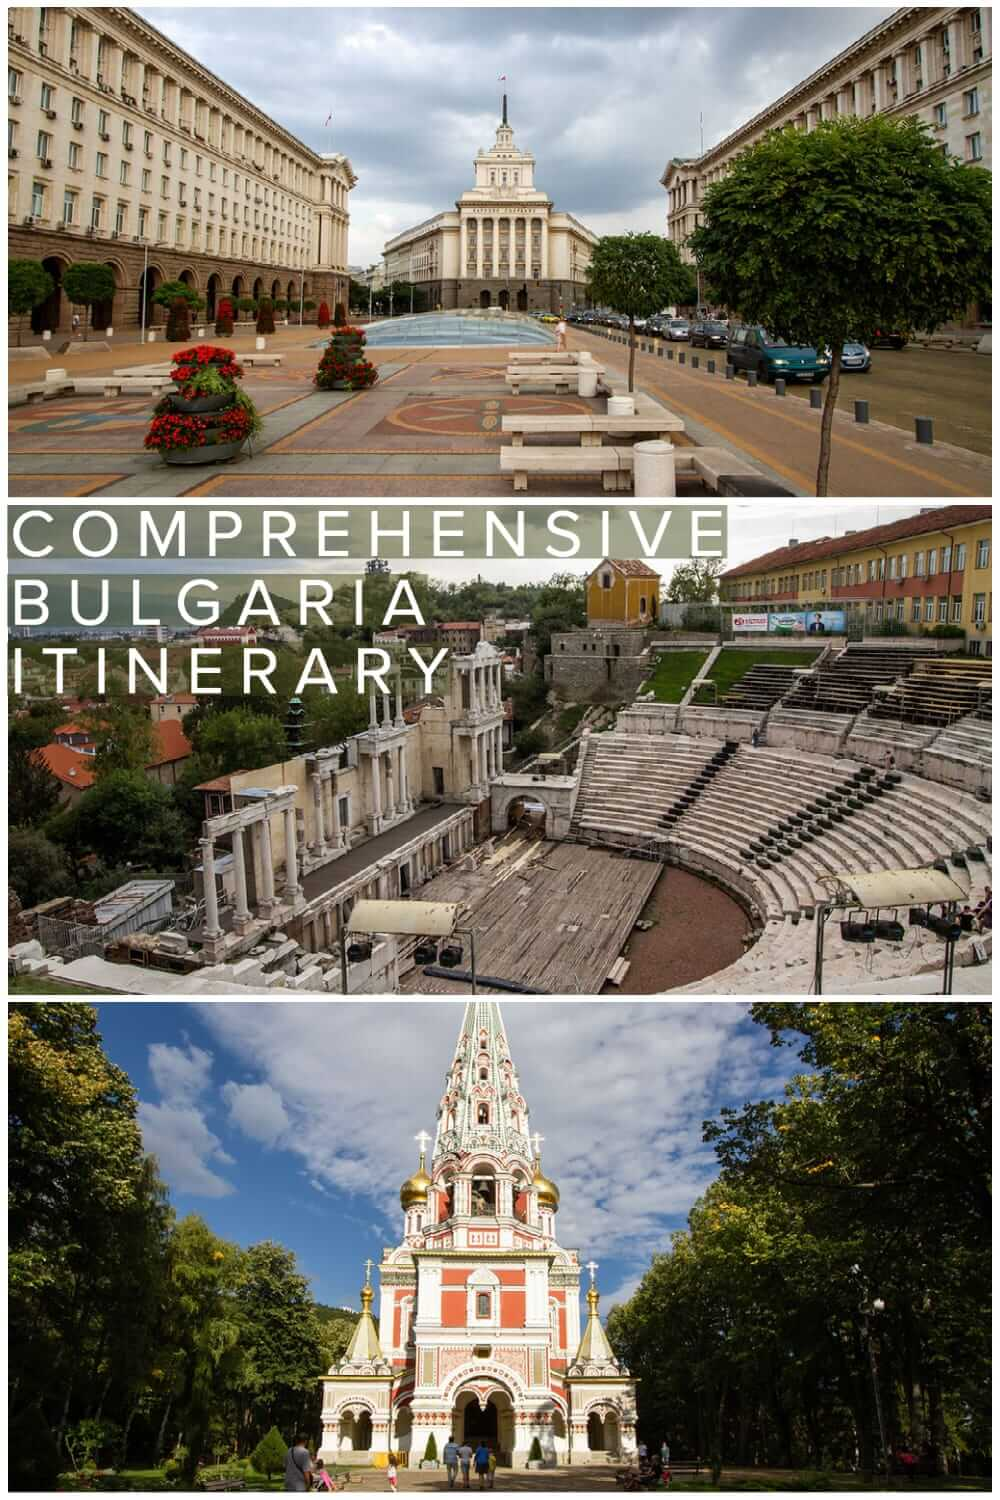 Comprehensive Bulgaria itinerary for backpackers and independent travellers to Bulgaria. What to see in Bulgaria in a 2 to 3 weeks #travel #backpacking #travelplanning #Balkans #europe